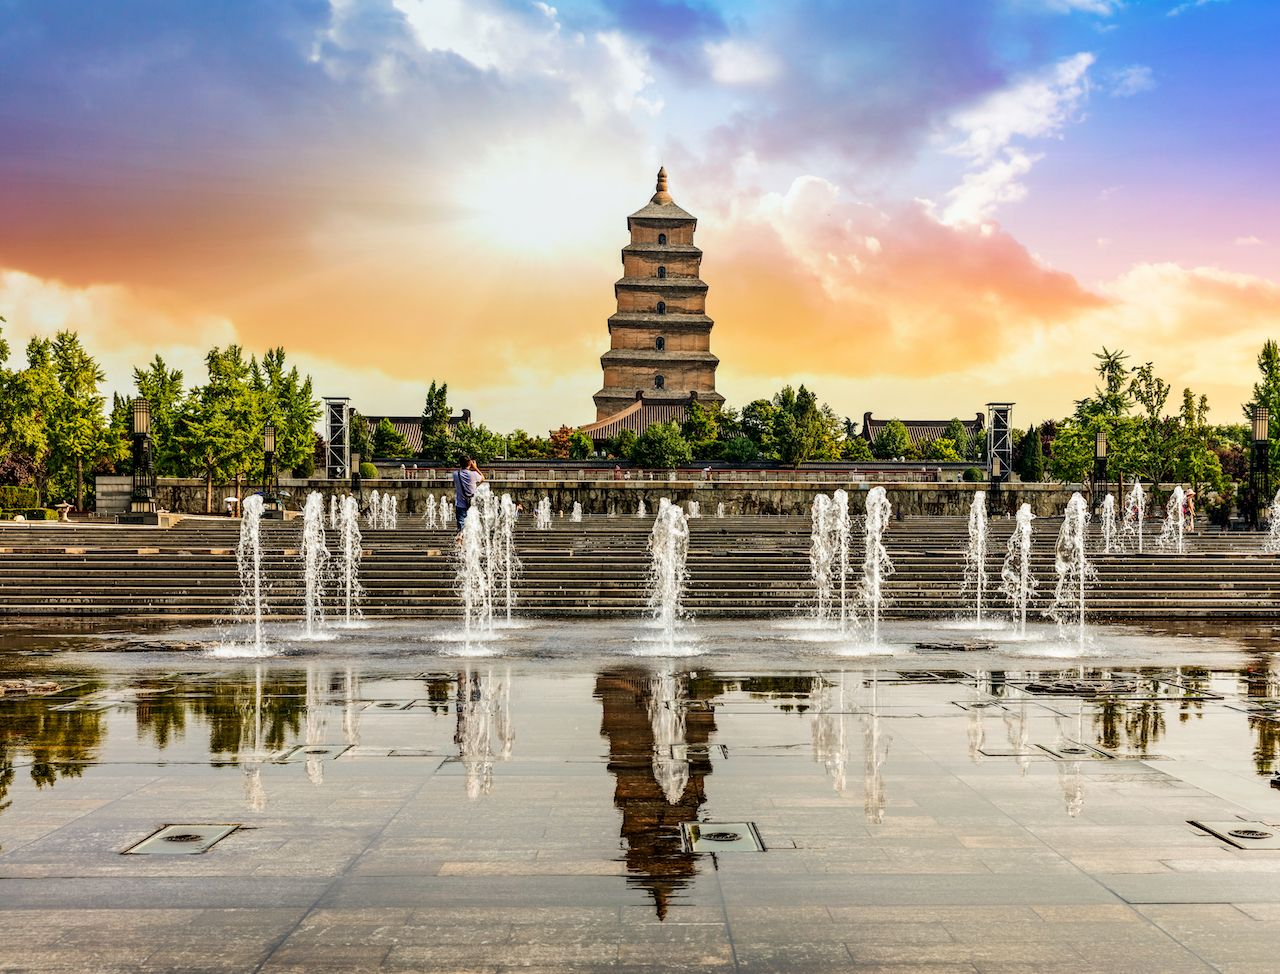 Giant Wild Goose Pagoda, Xian, China